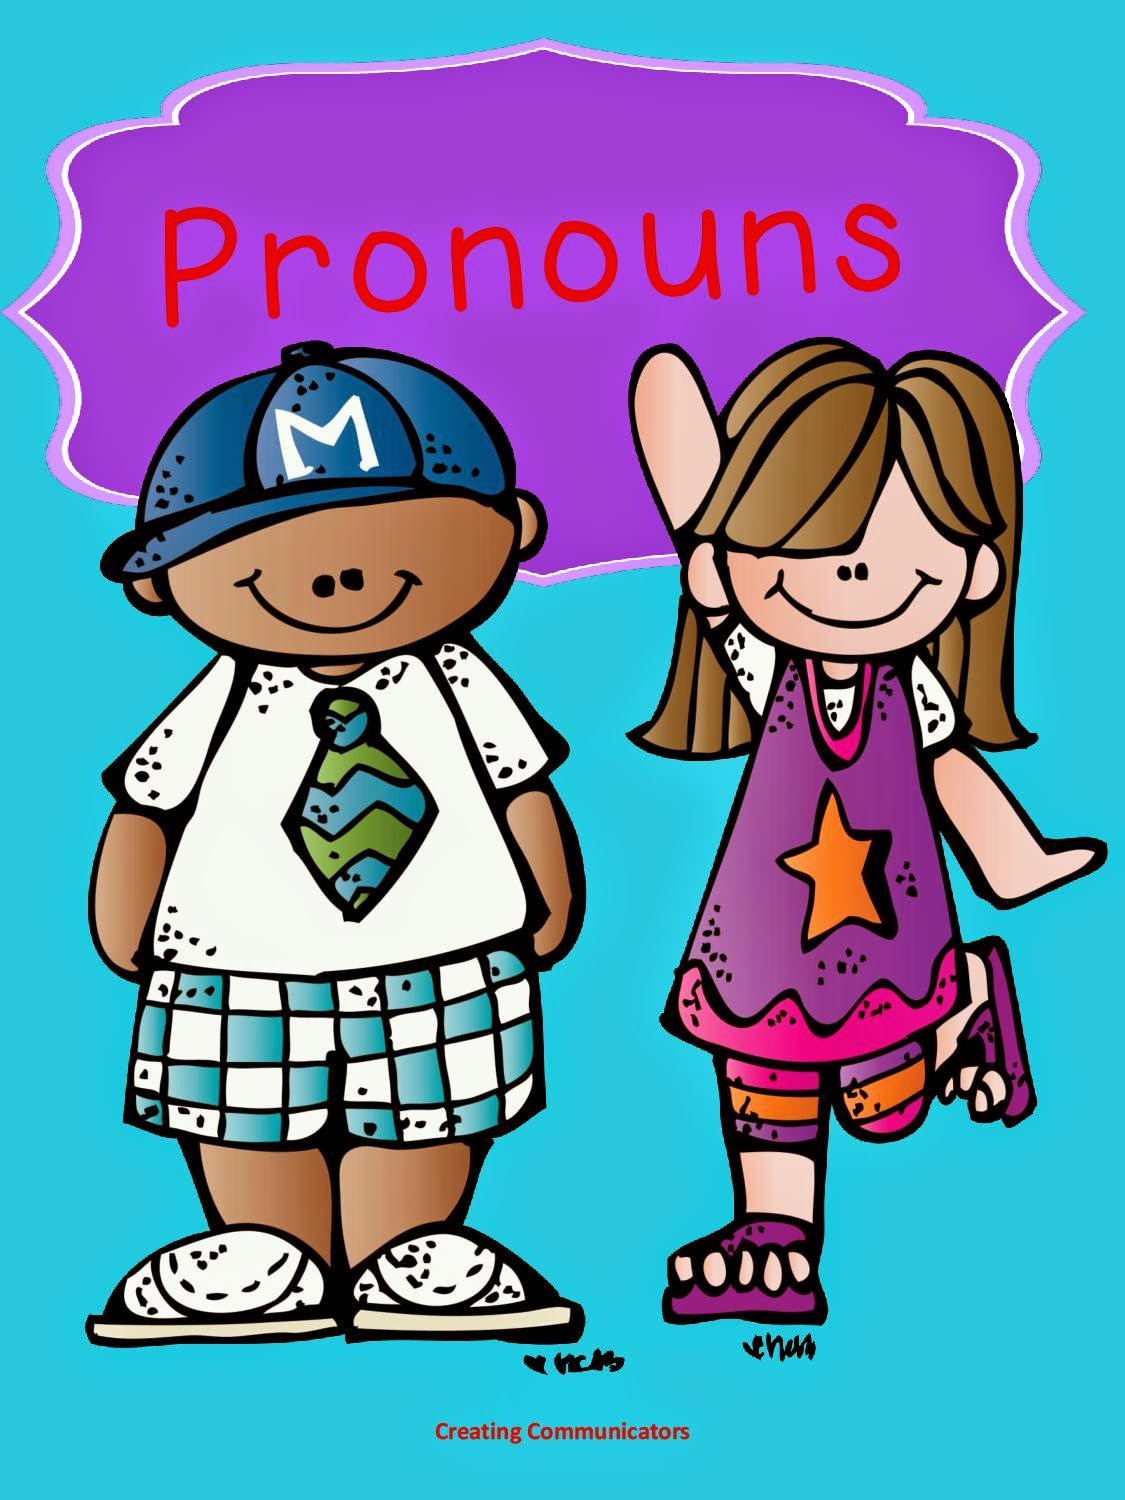 Creating Communicators Pronoun Favourites